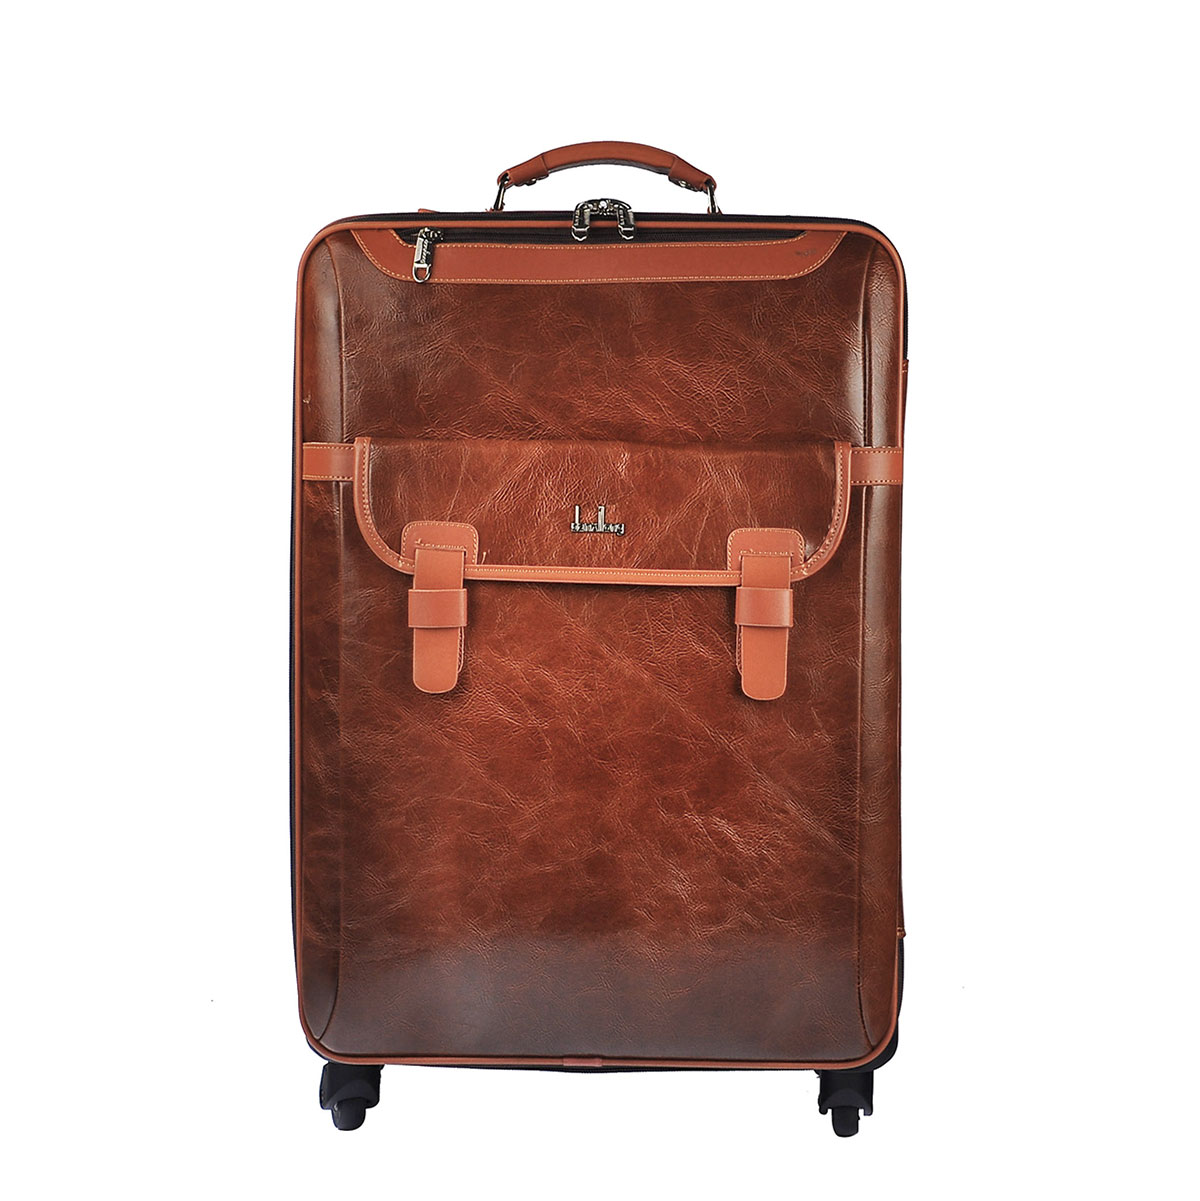 the gallery for vintage luggage with wheels. Black Bedroom Furniture Sets. Home Design Ideas